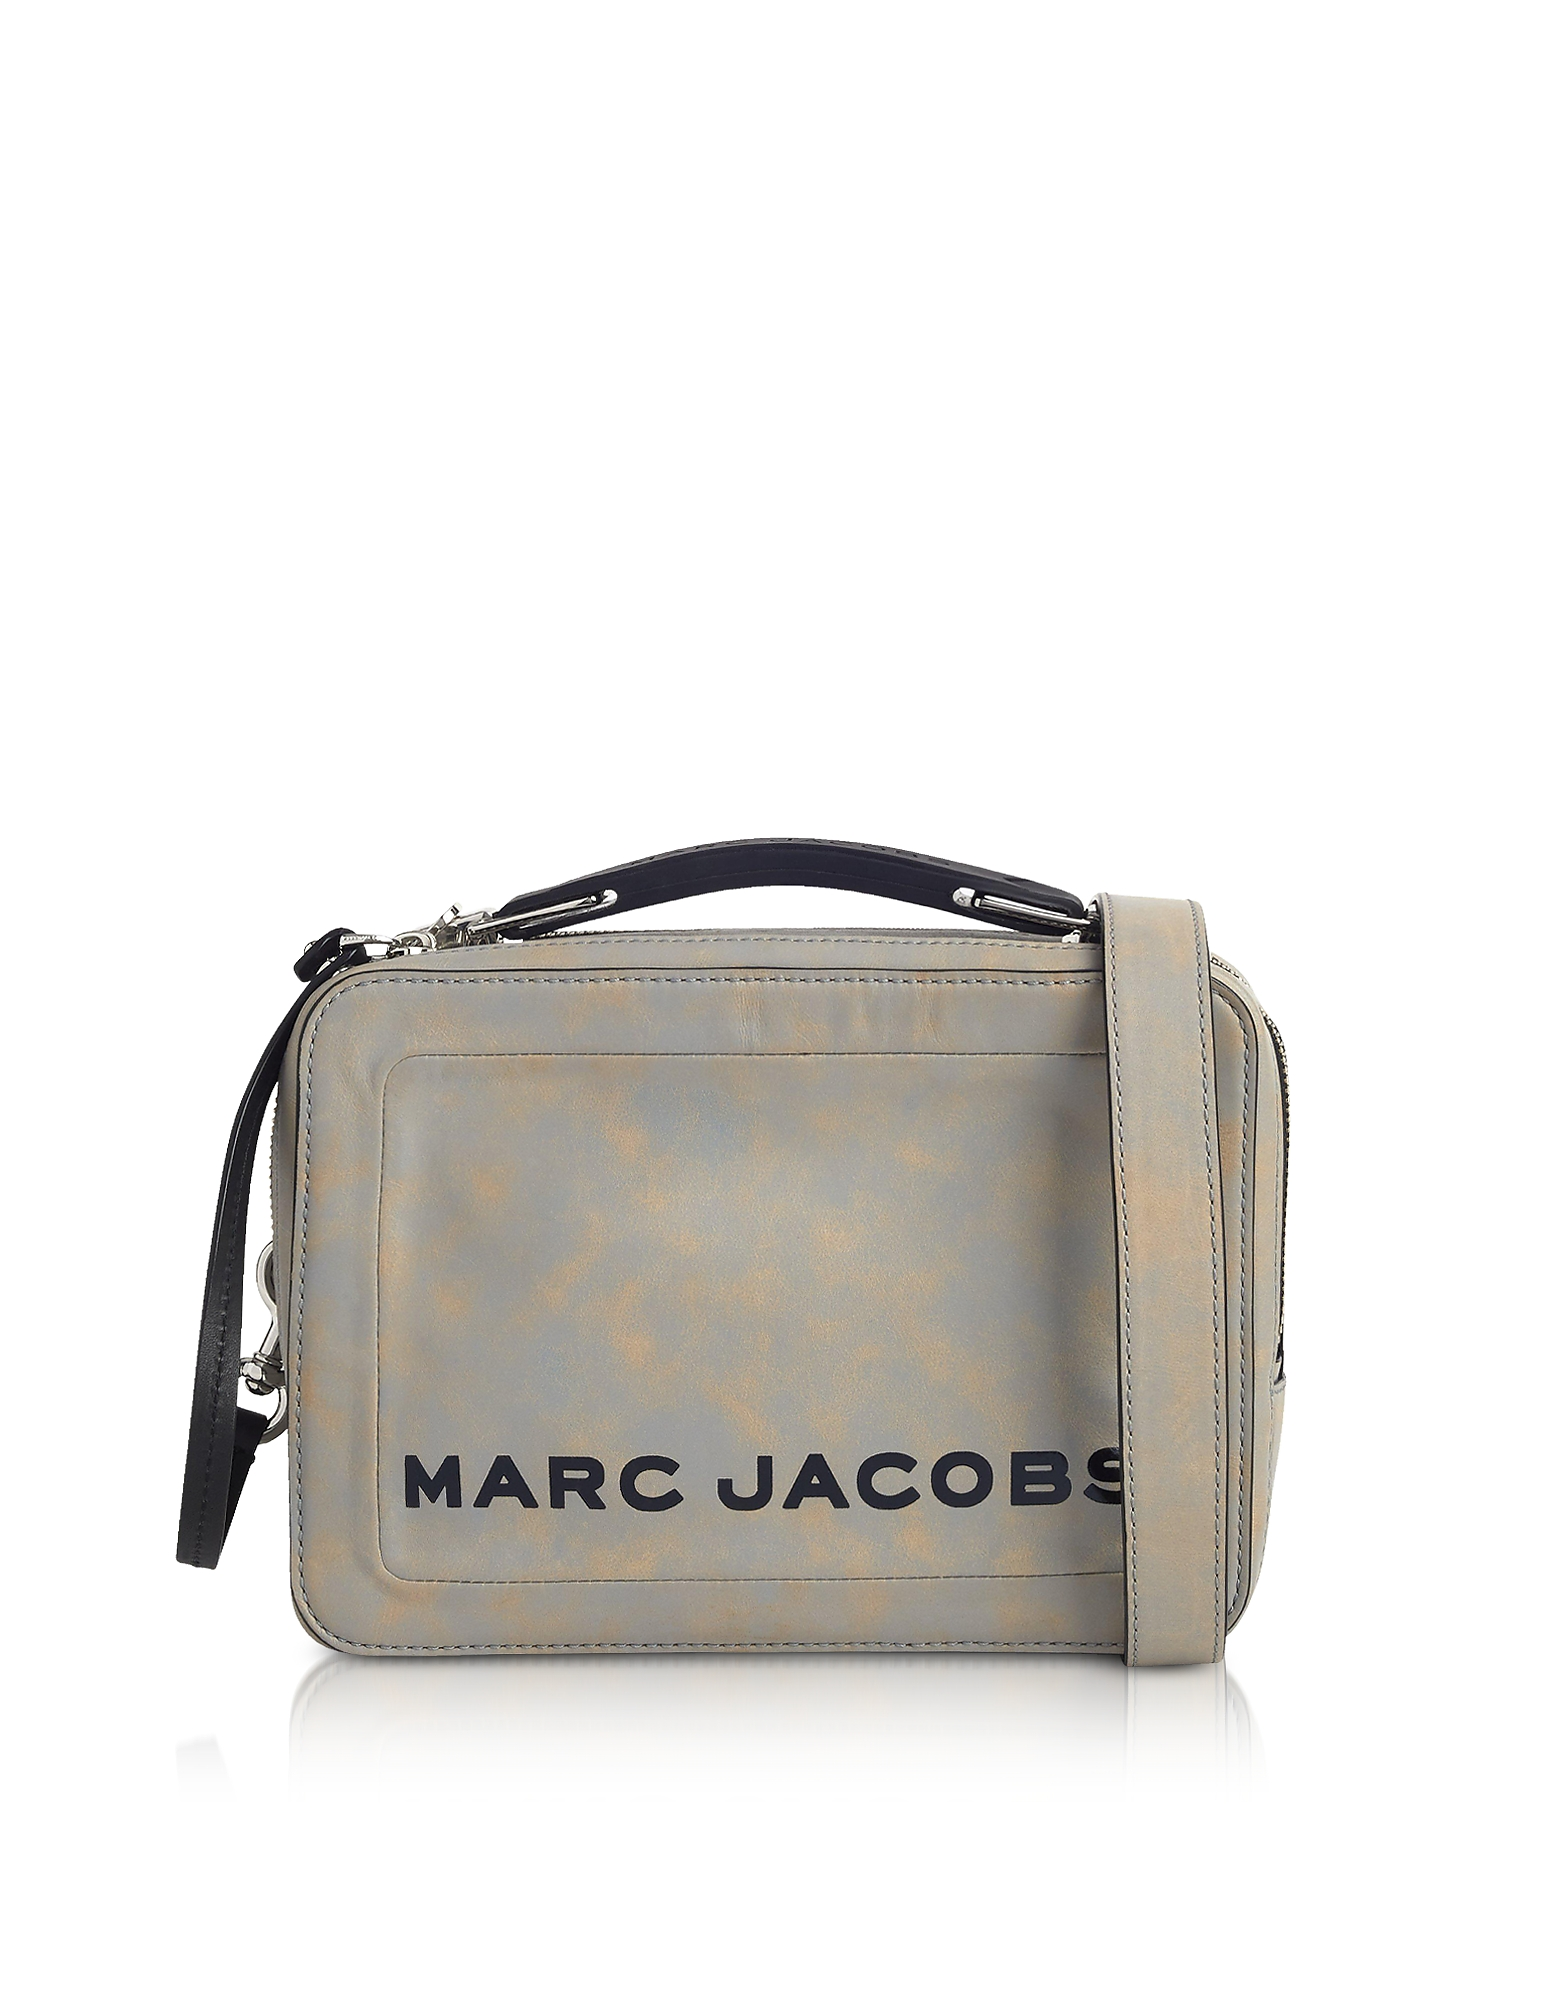 Marc Jacobs Handbags, The Box Top Handle Leather Squared Satchel Bag